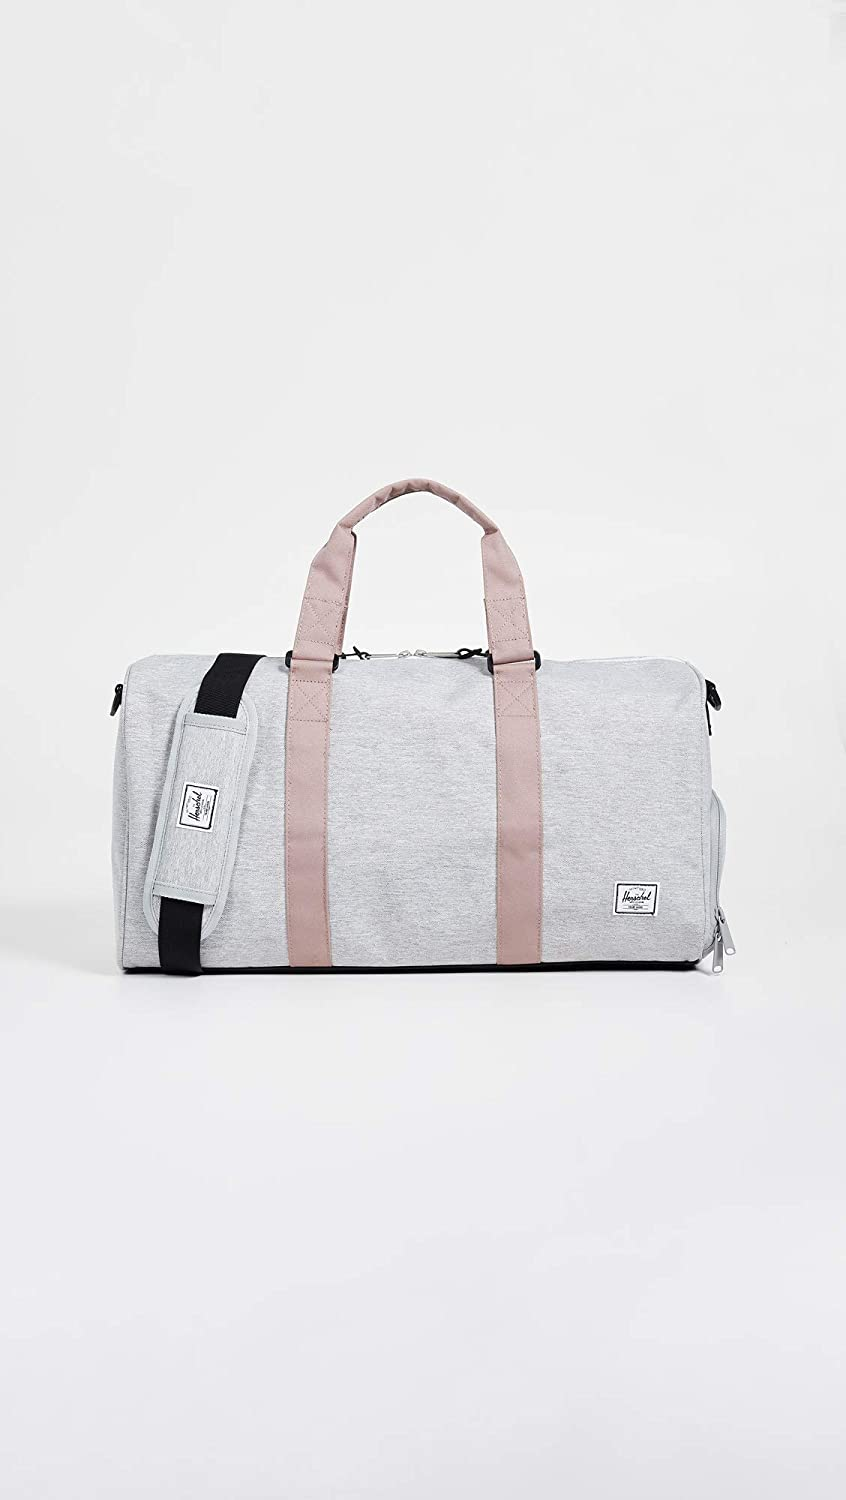 ac36cf2e9d9b Herschel Novel Mid-Volume Duffel Bag Light Grey Crosshatch/Ash Rose/Black  One Size